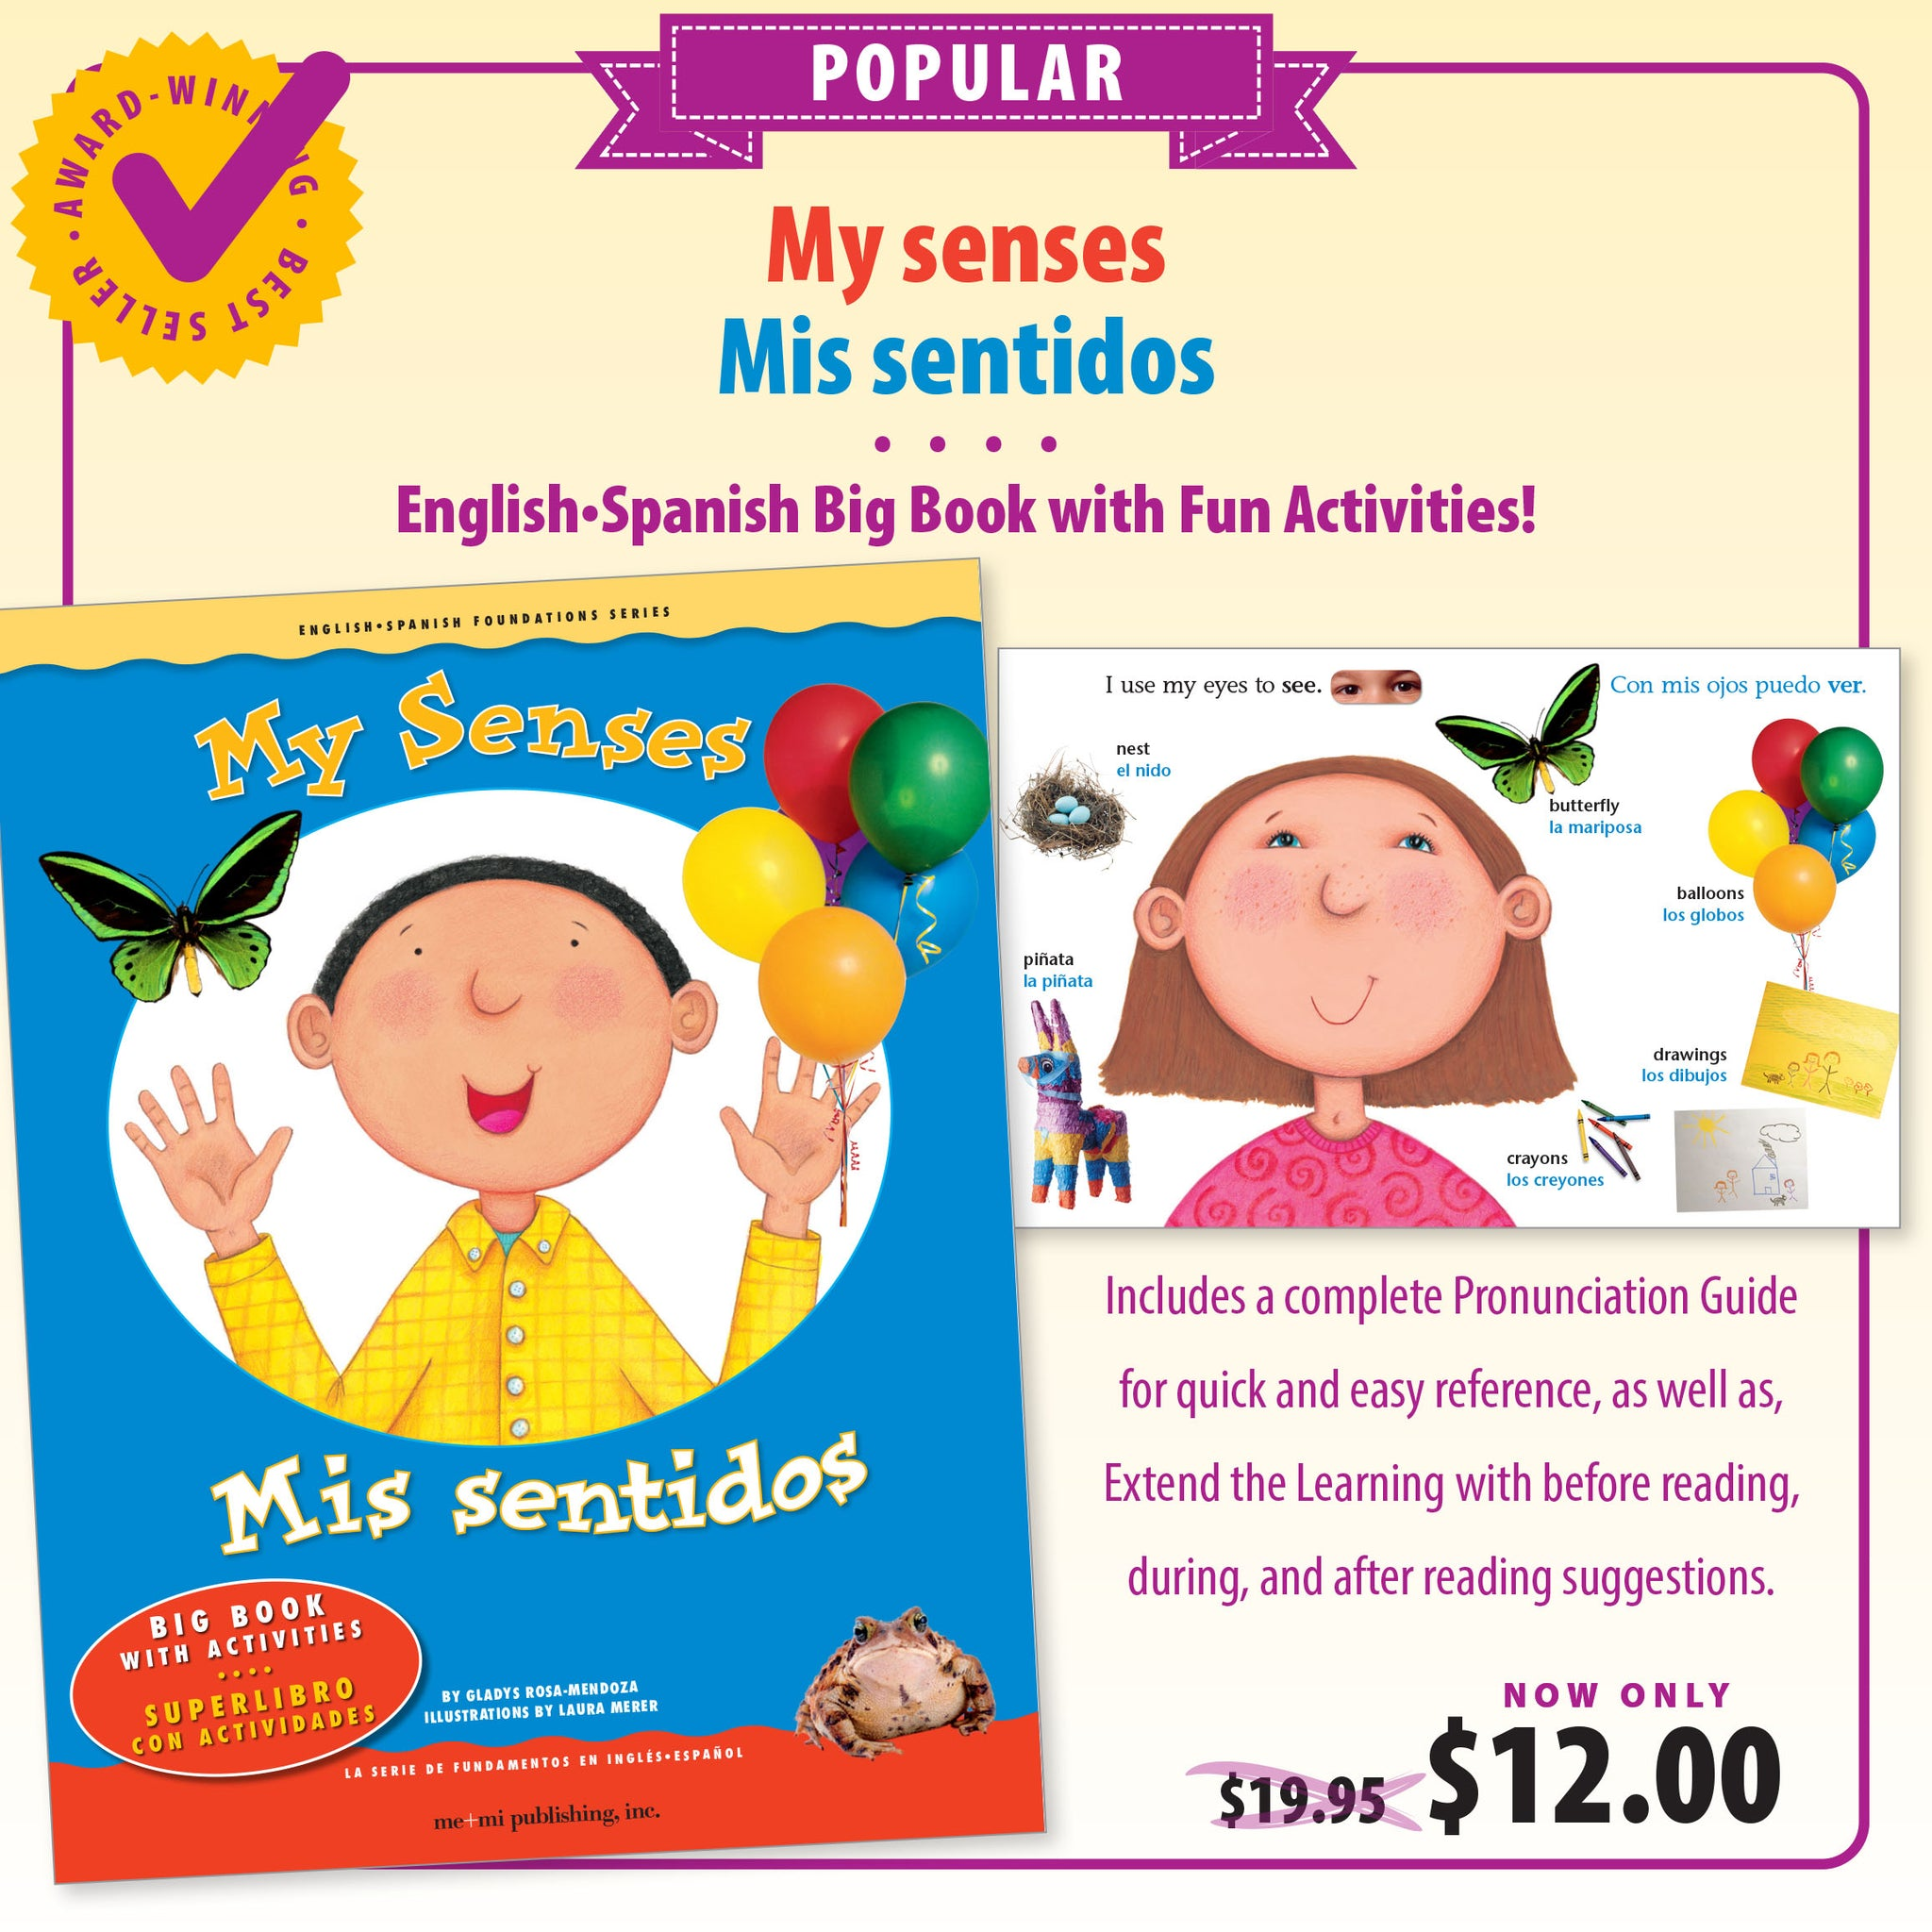 My senses Big Book / Mis sentidos